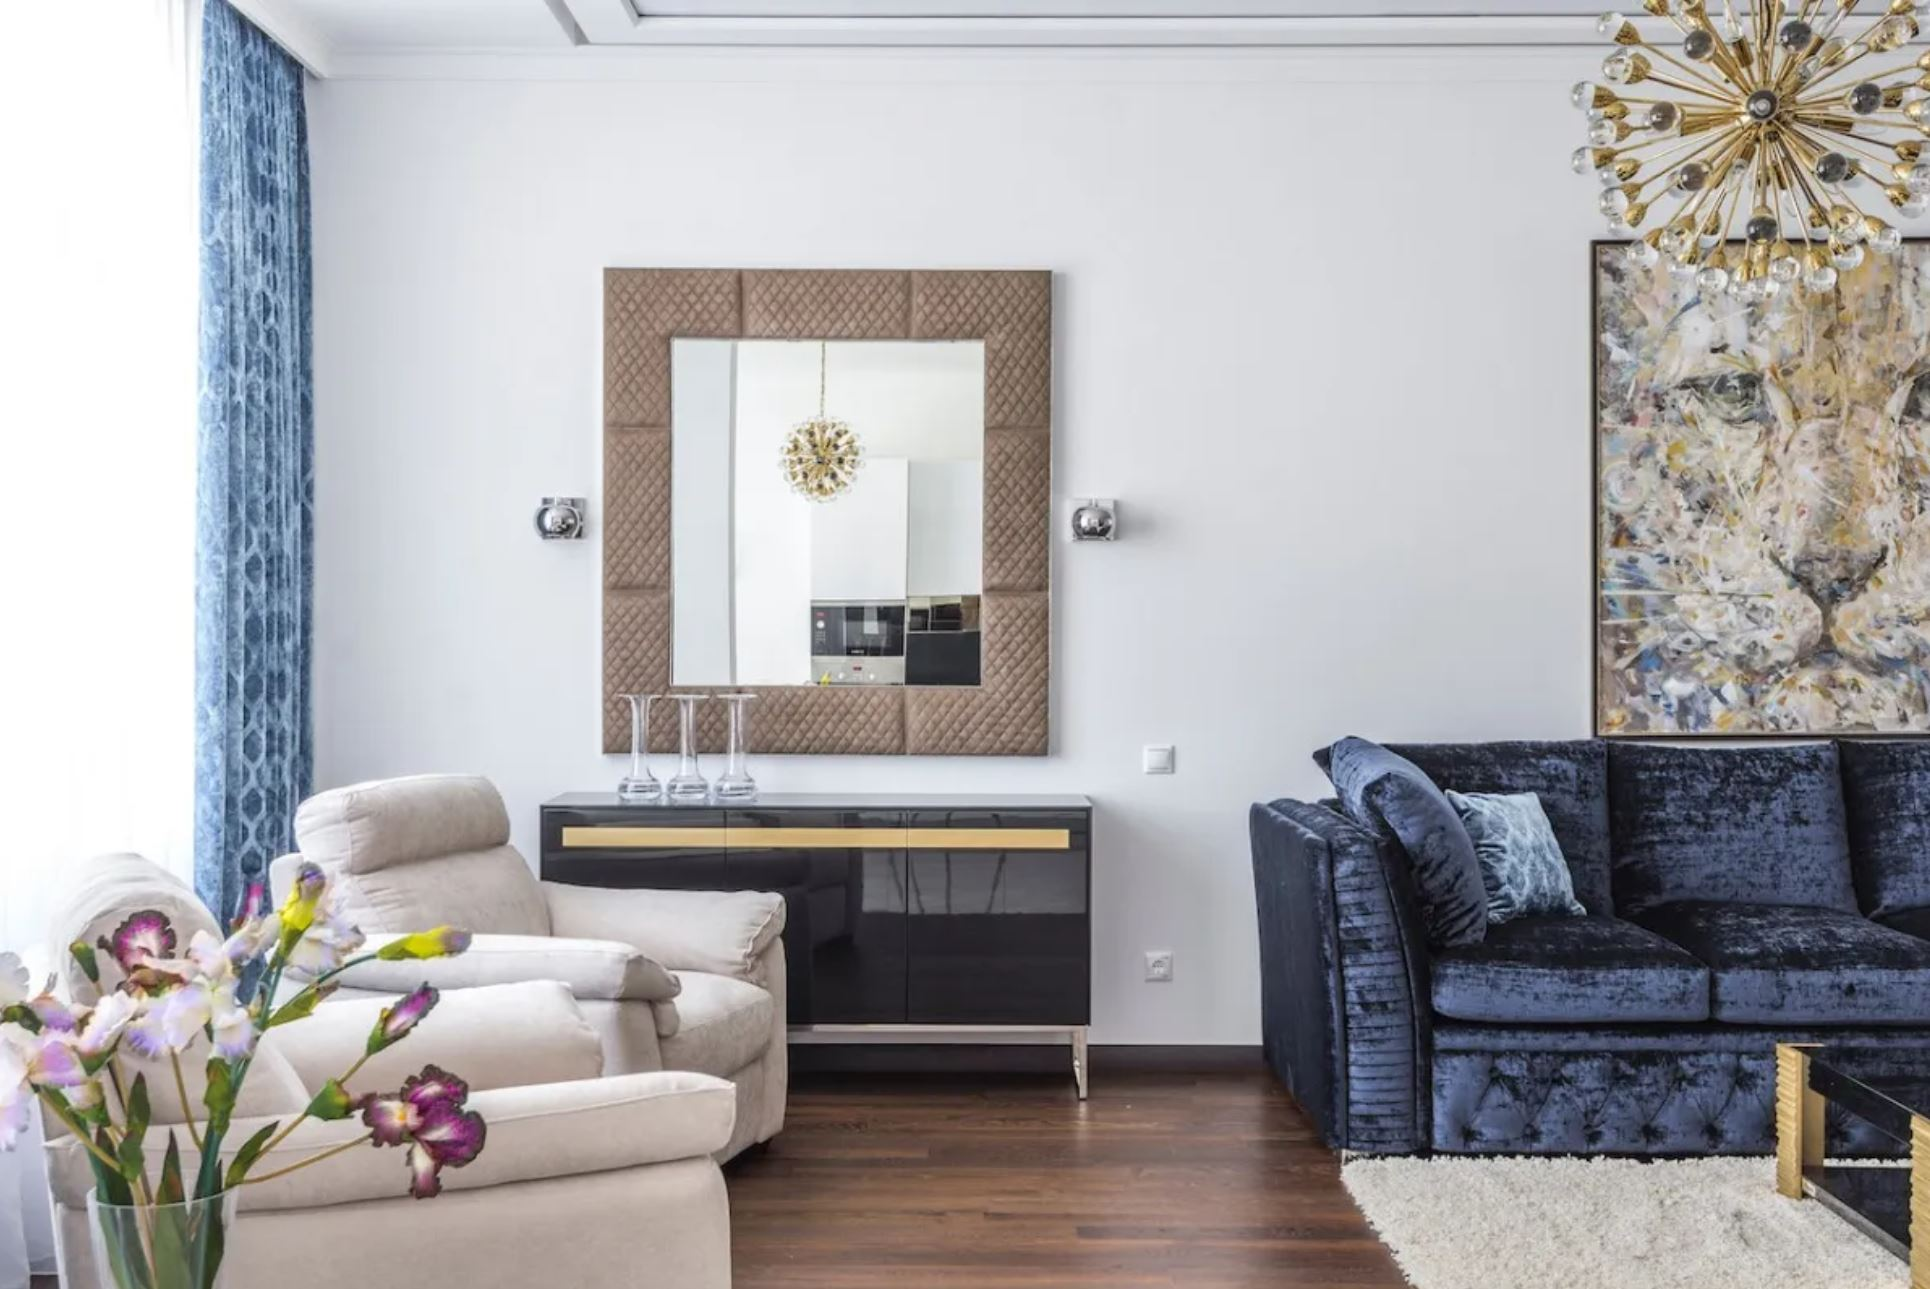 Realtor Magazine 2021 05 07 Home Staging that looks TV ready Step One what is important since going through the China COVID-19 Coronavirus plandemic Hoey Team exp Realty